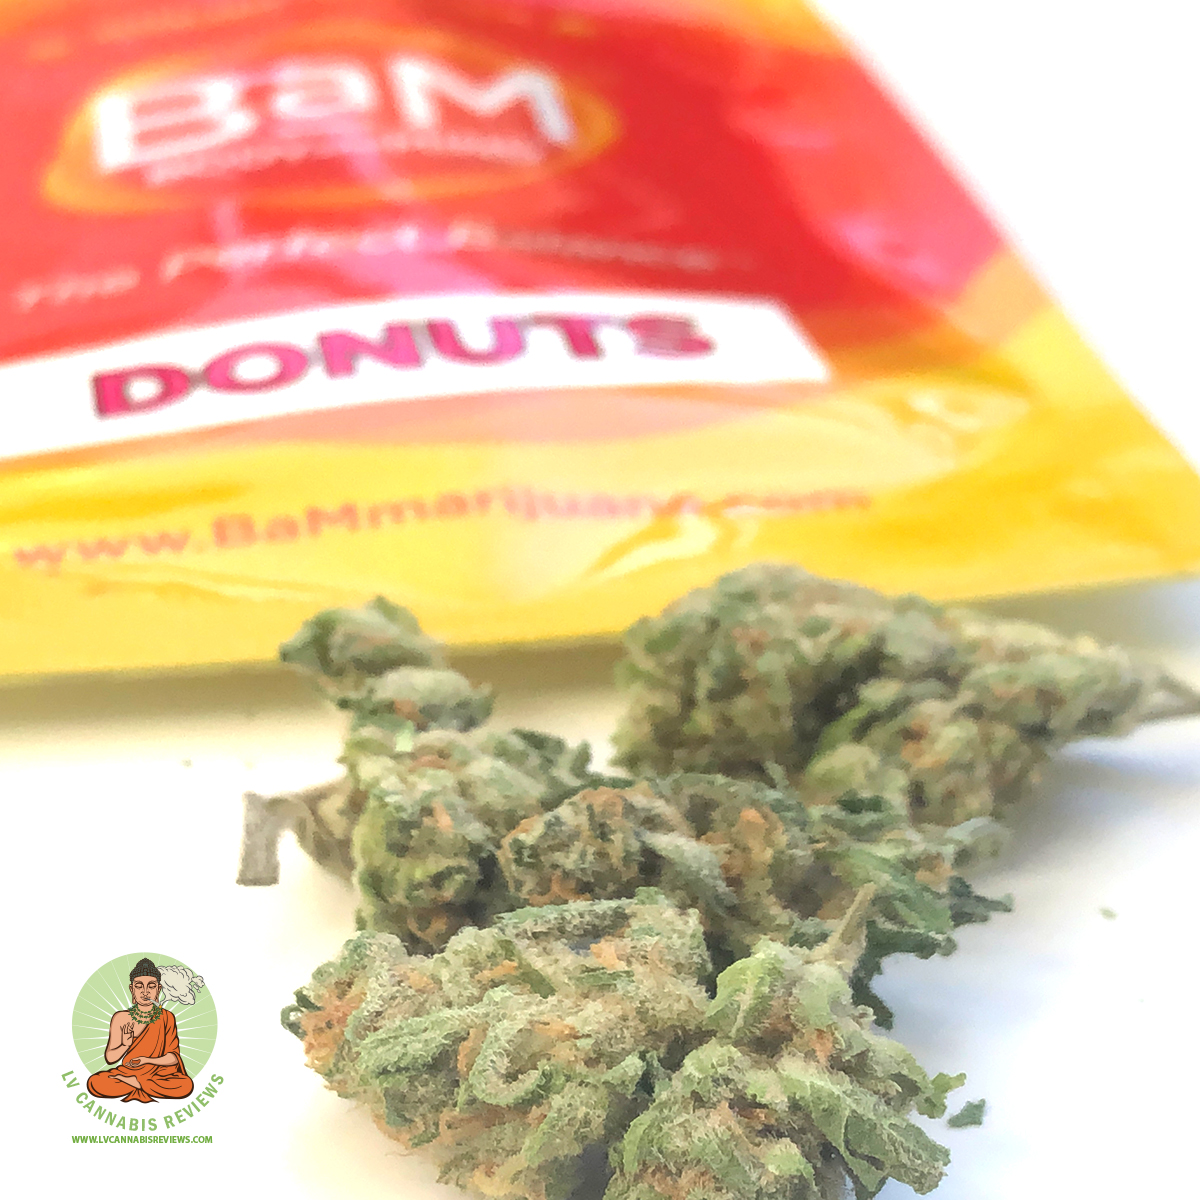 Body And Mind | BAM Donuts 1g (pack) Review December 2019 Thrive Marketplace Dispensary